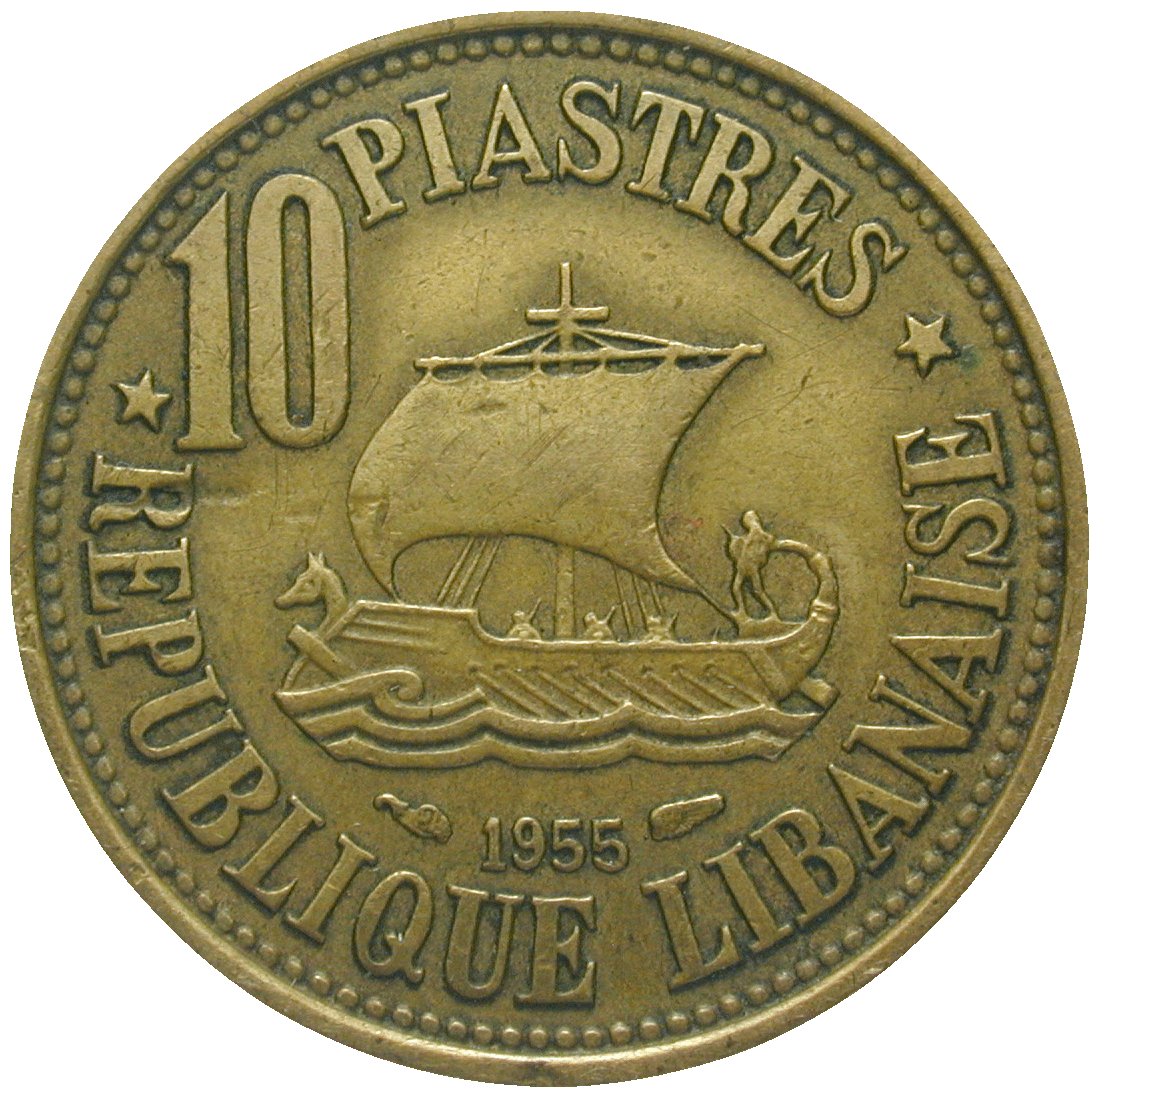 Republic of Lebanon, 10 Piasters 1955 (obverse)